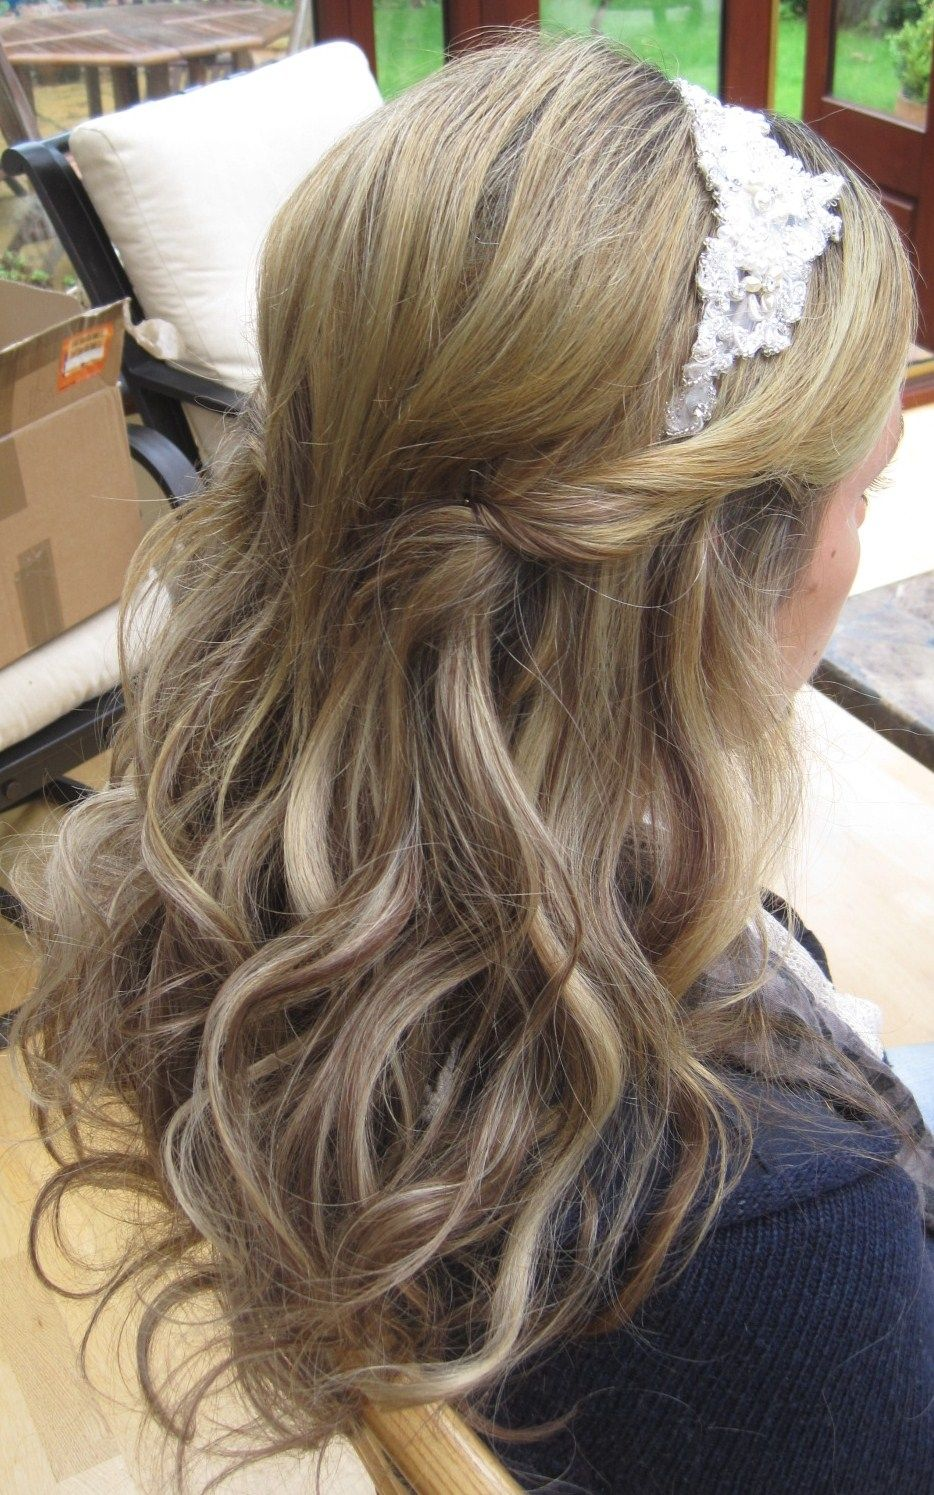 Bouncy Curls and Half-Updo Hairstyle for Fine Hair